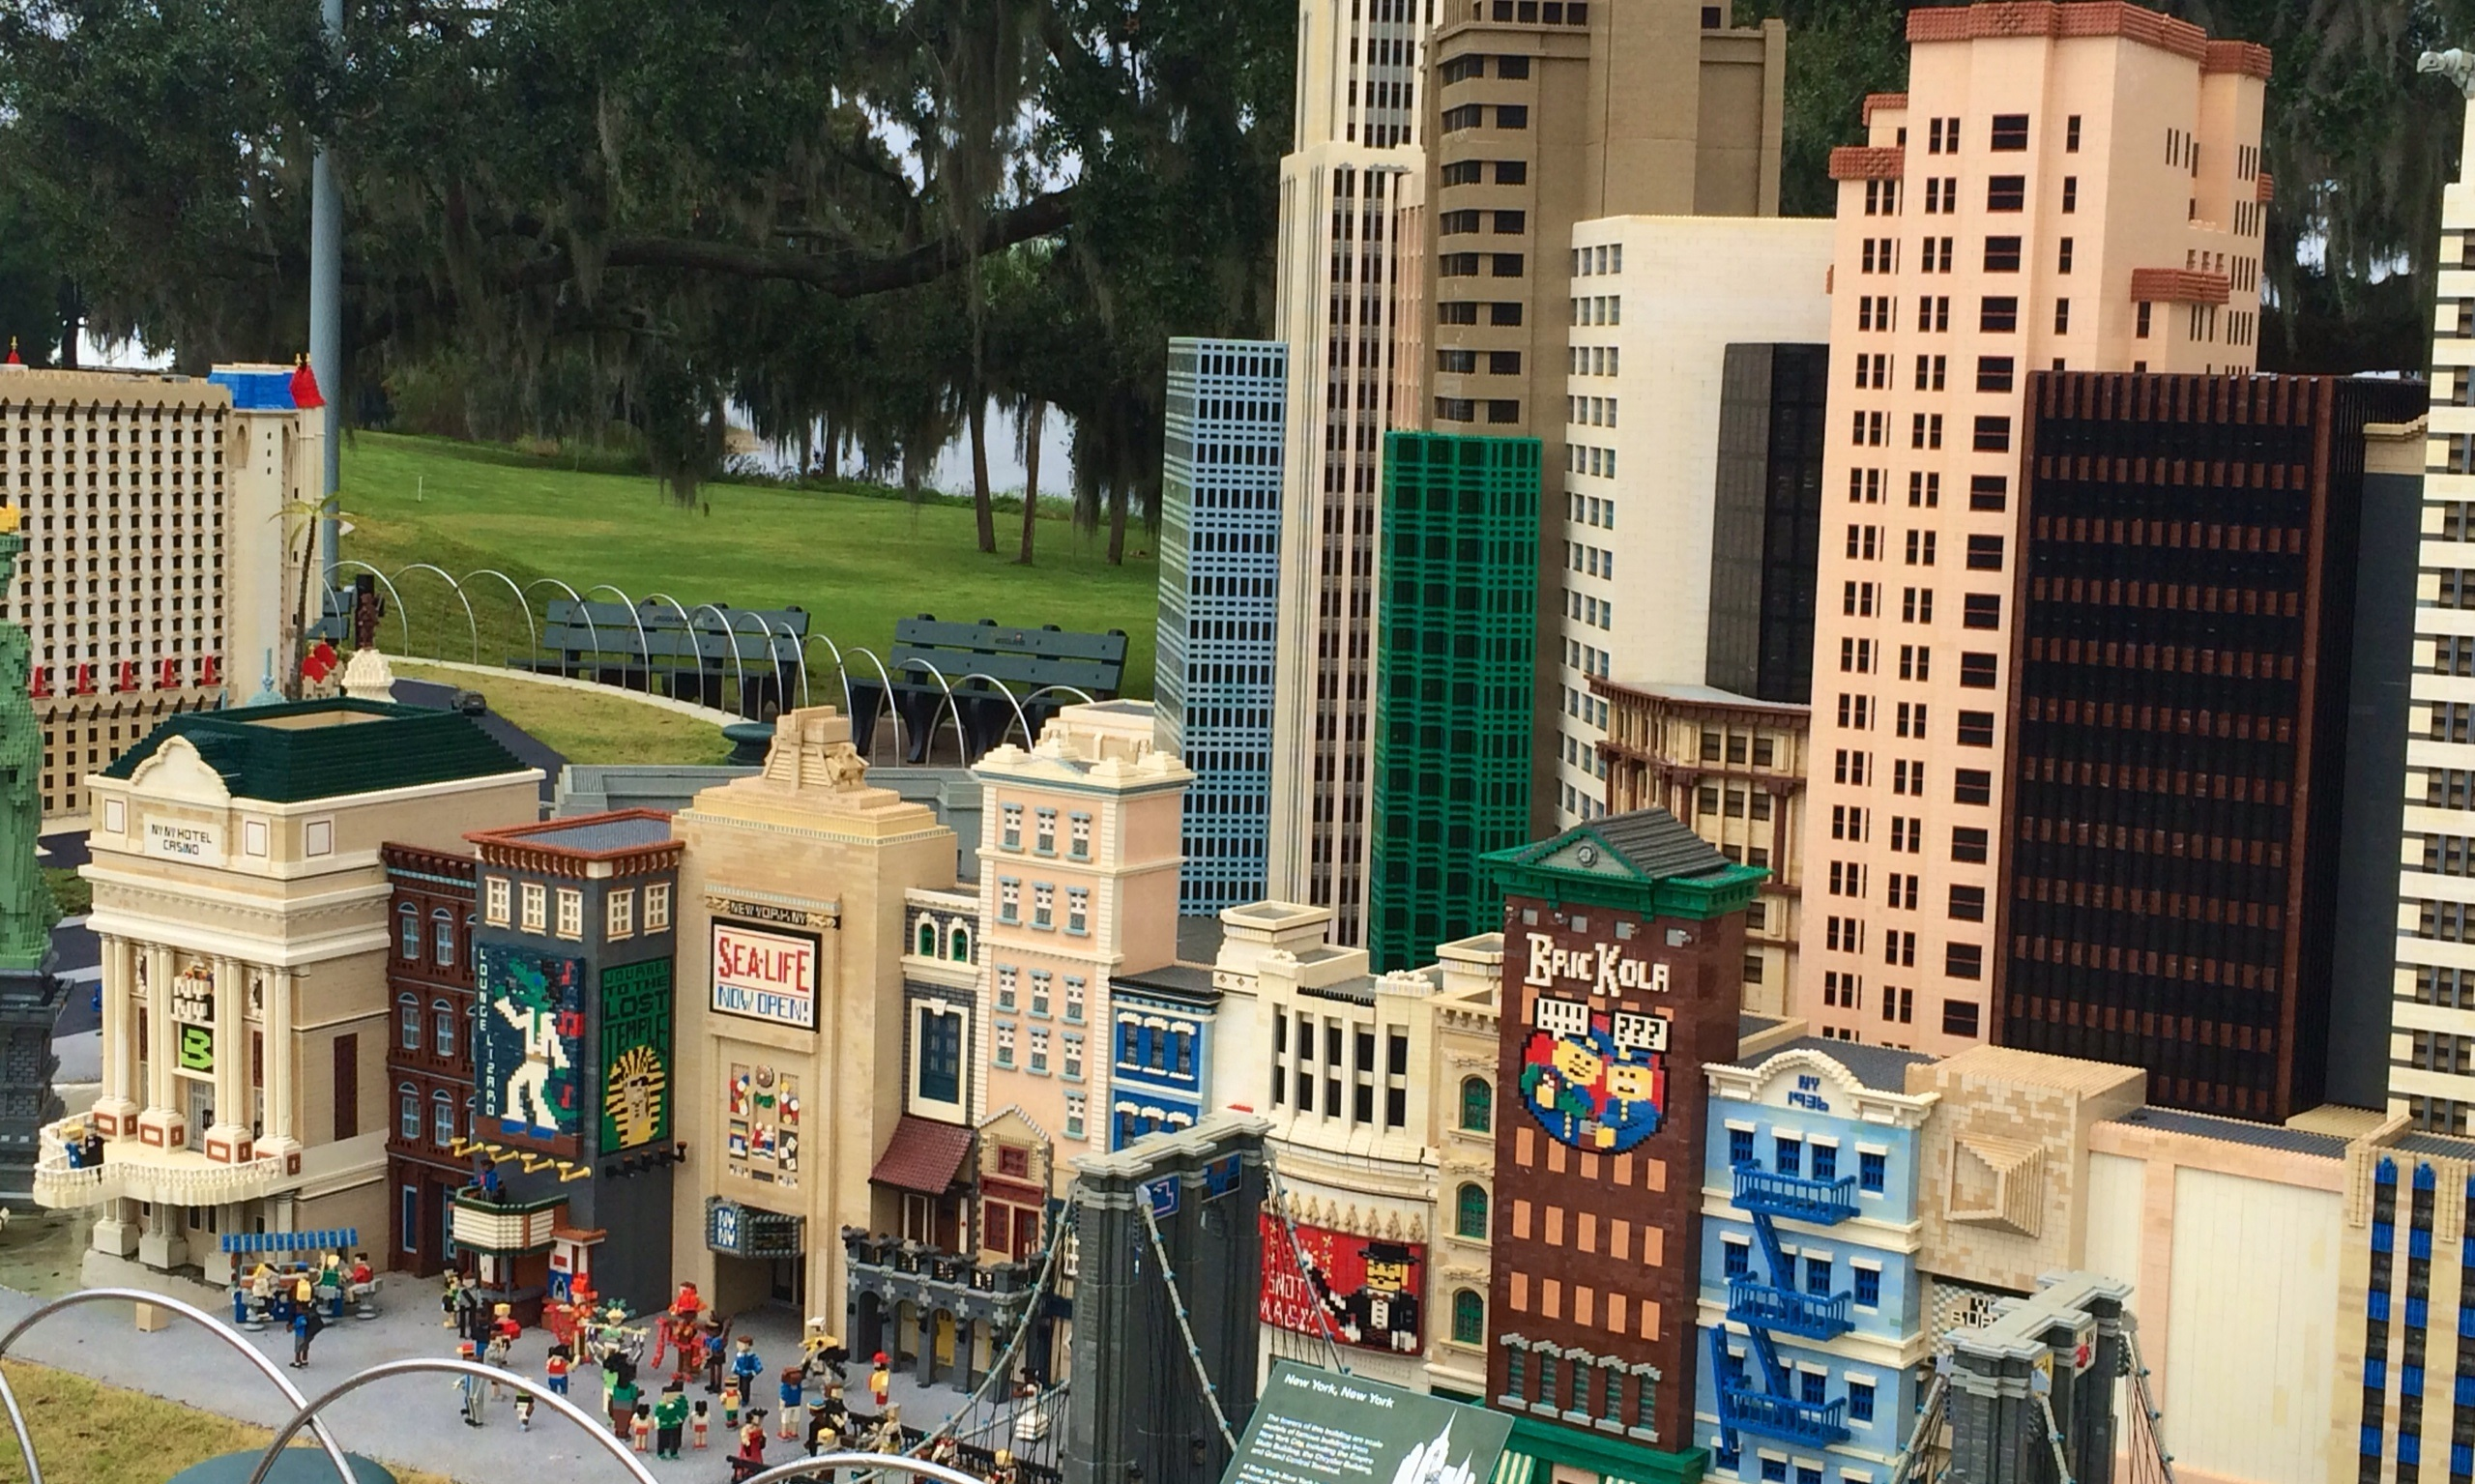 maps orlando with 10 Awesome Things About Legoland Florida on Nusa Penida Indonesia besides National Mall Map Washington Dc besides CreolBuilding2 as well State together with 12oct2015 Morimoto Asia Tour.